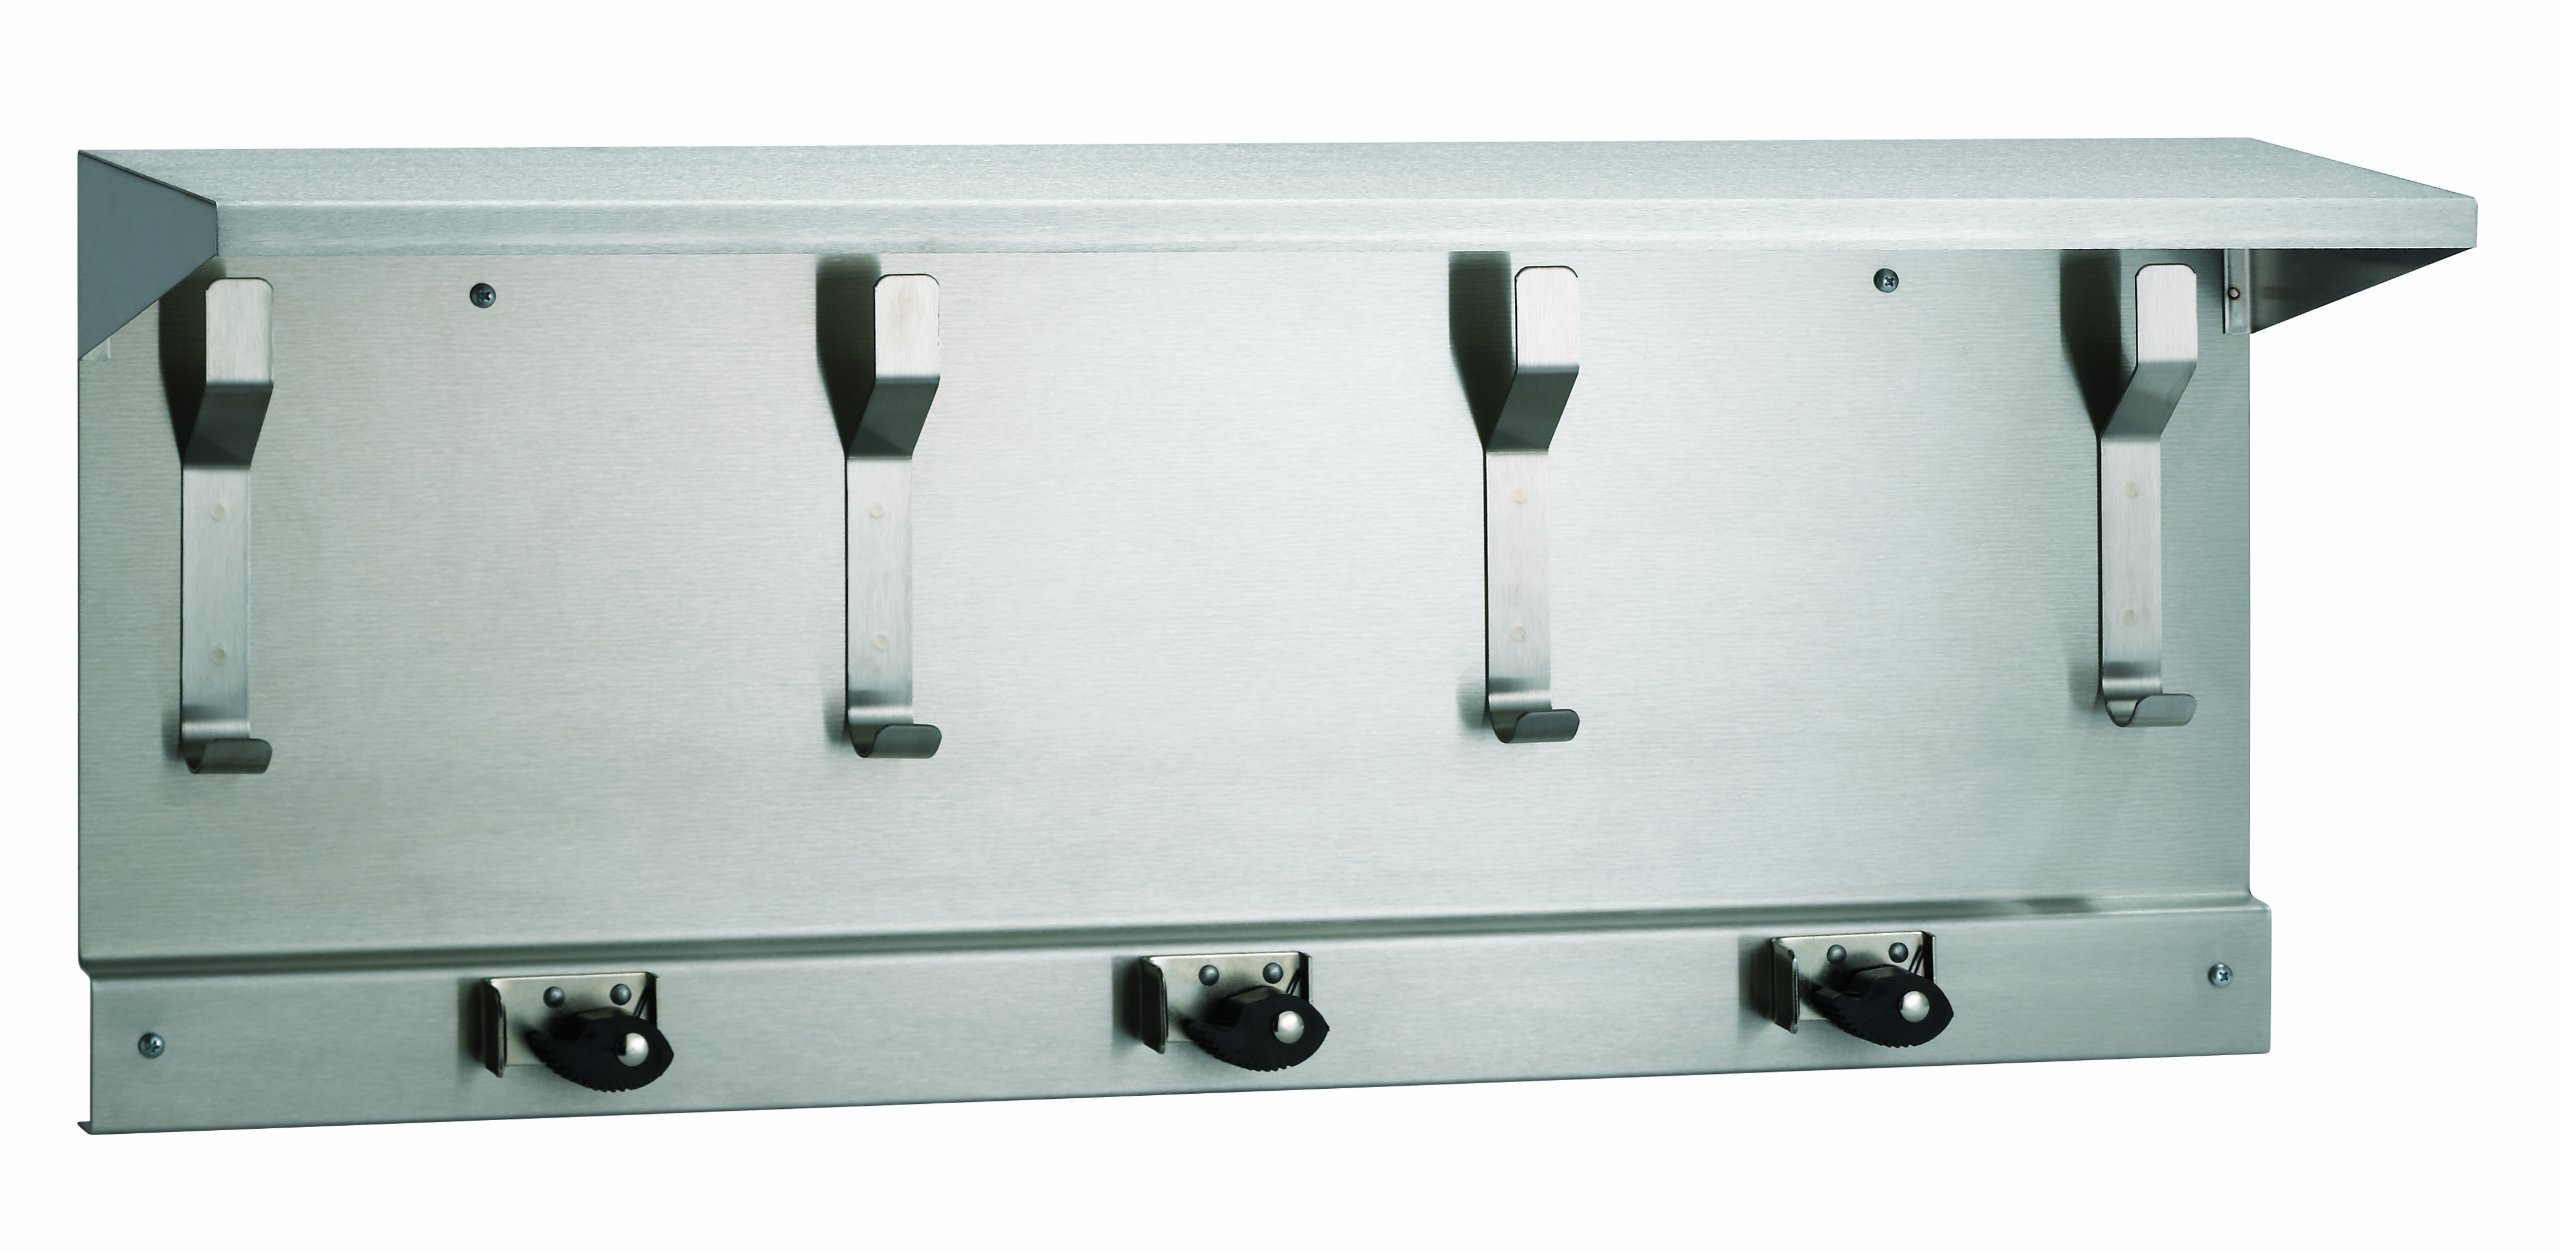 Bradley 9933-000000 Stainless Steel Utility Shelf with Mop and Broom Holder, 34'' Width x 14'' Height x 8'' Depth